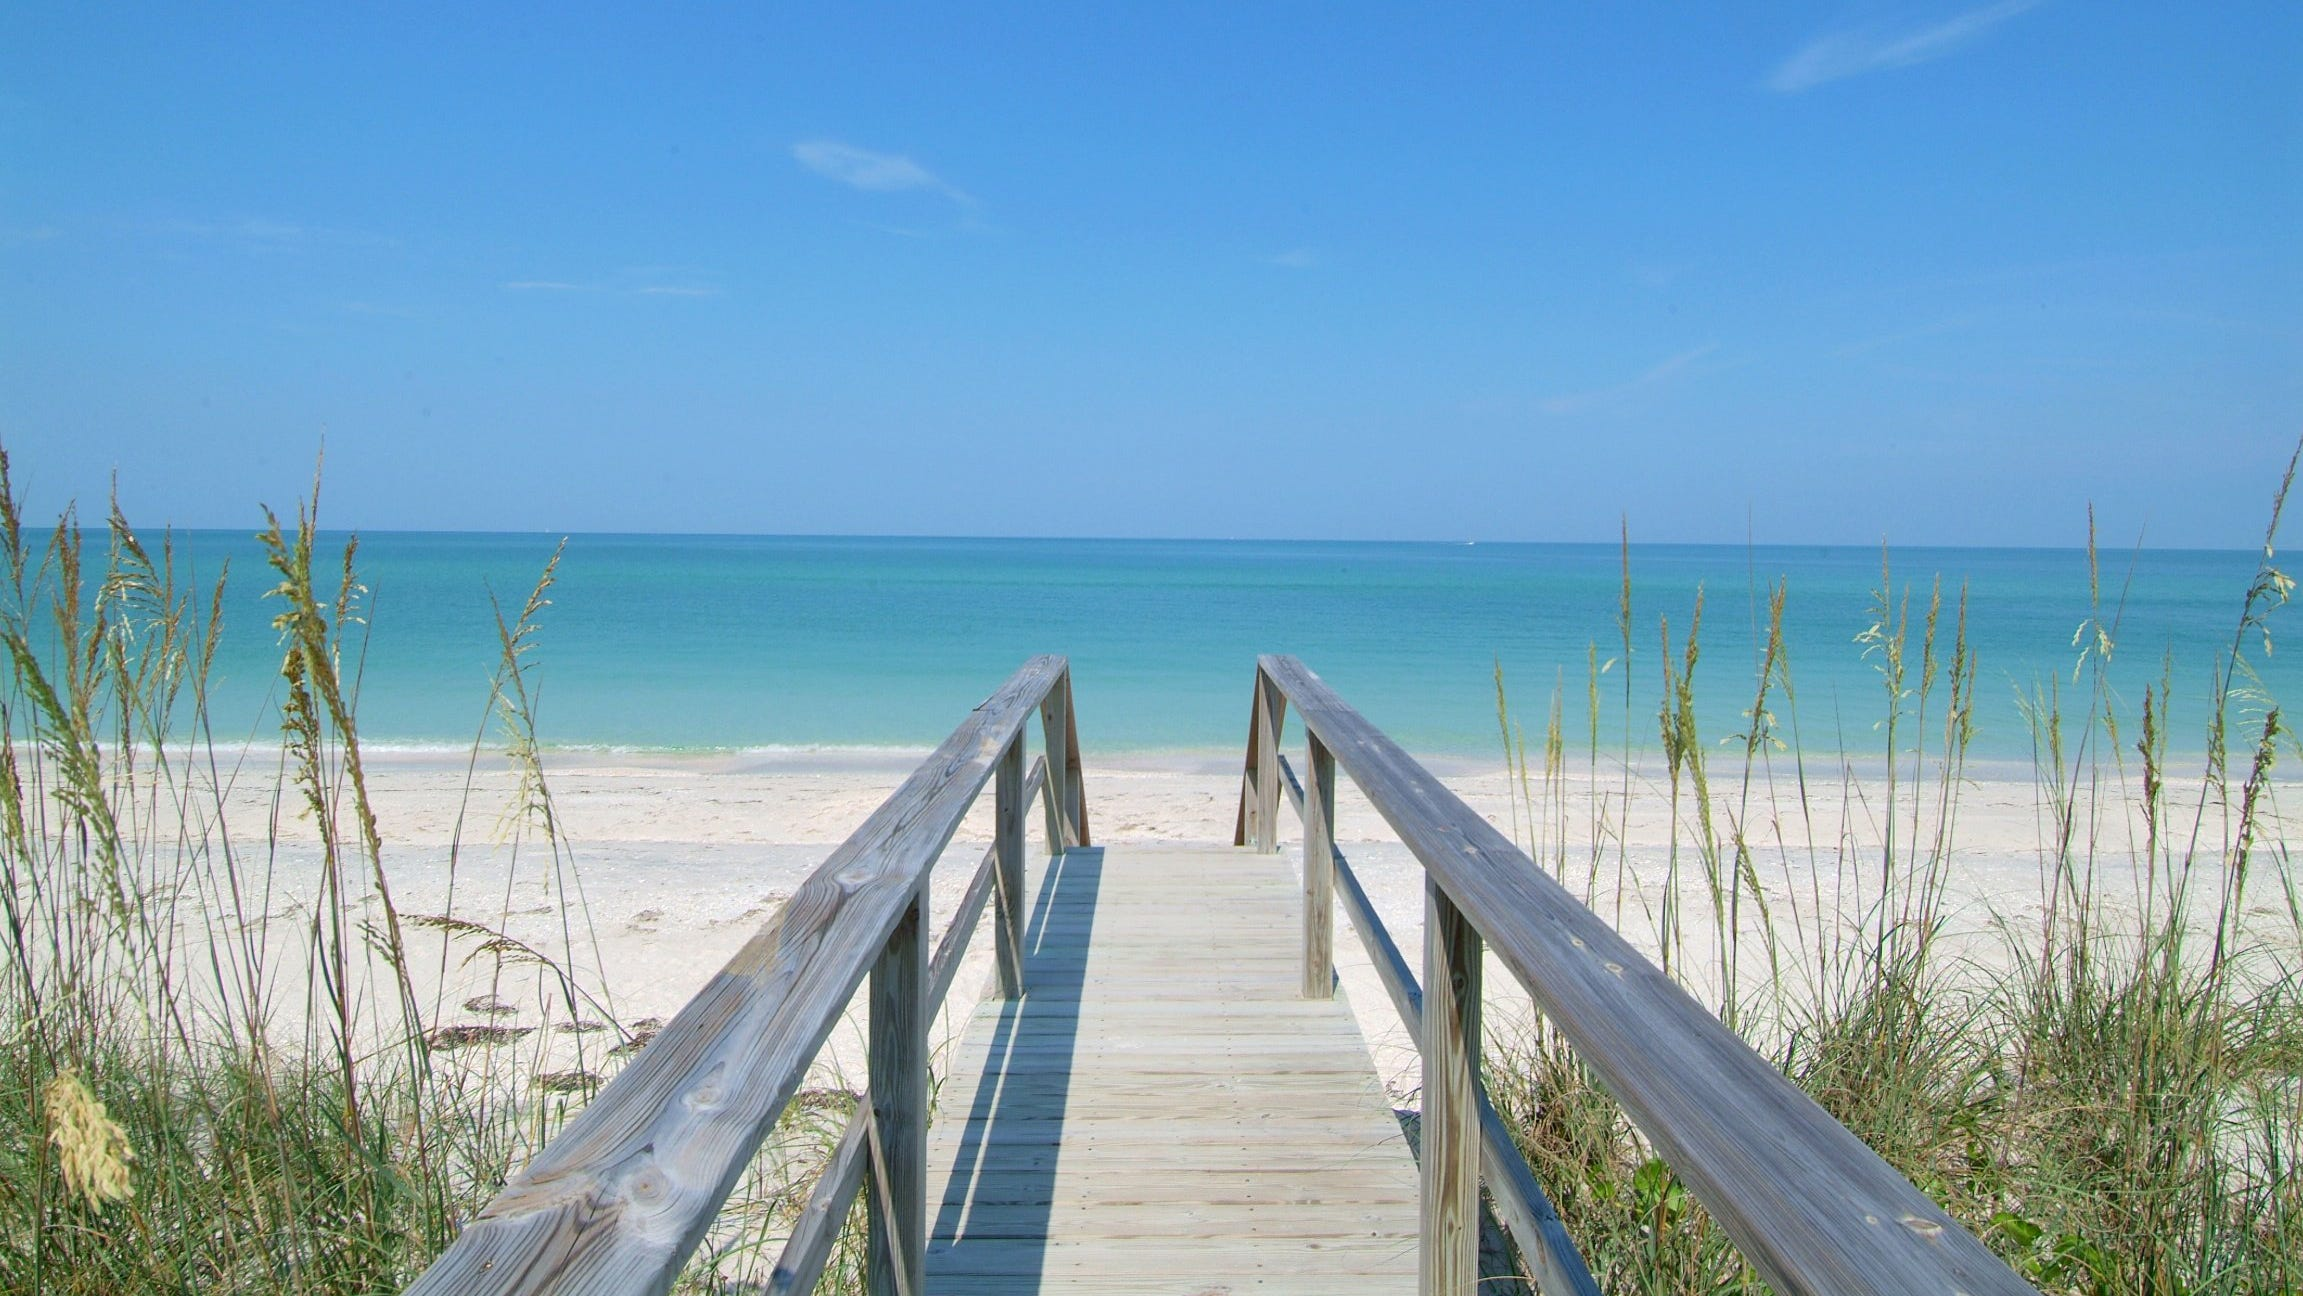 Floridians may want to visit Siesta Key near Sarasota, which has been named the nations' top beach numerous times by Trip Advisor.